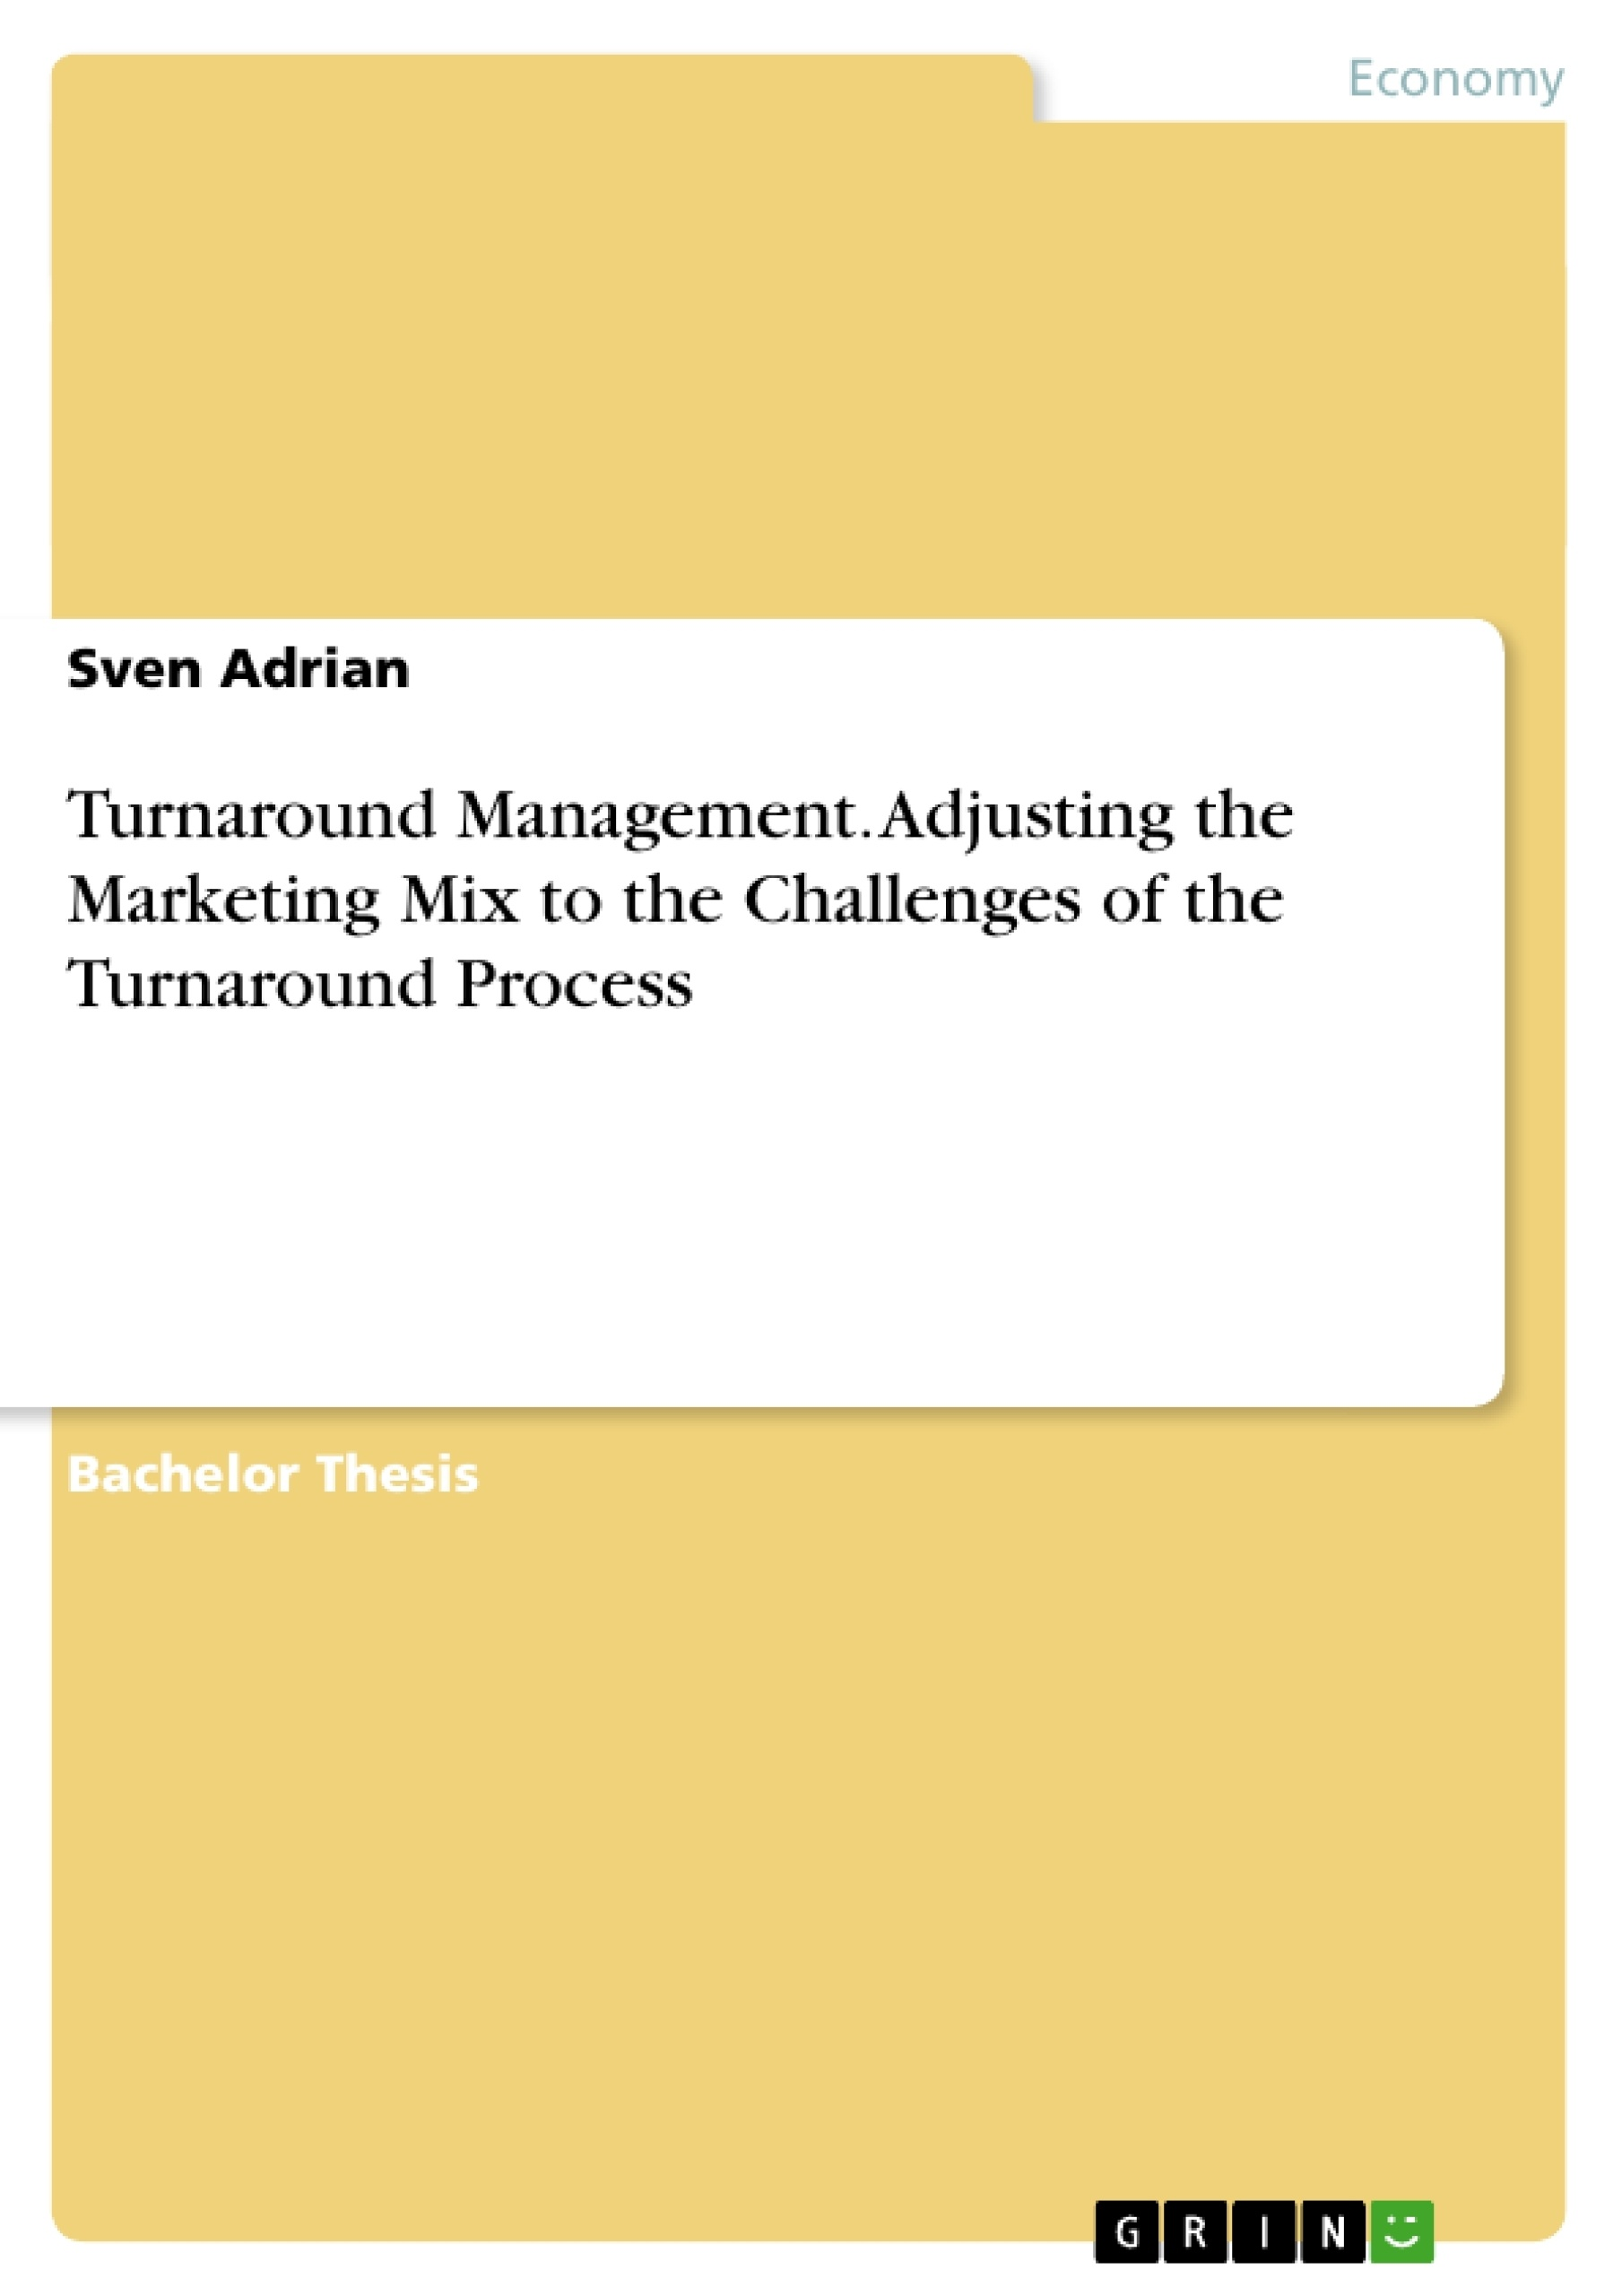 Title: Turnaround Management. Adjusting the Marketing Mix to the Challenges of the Turnaround Process